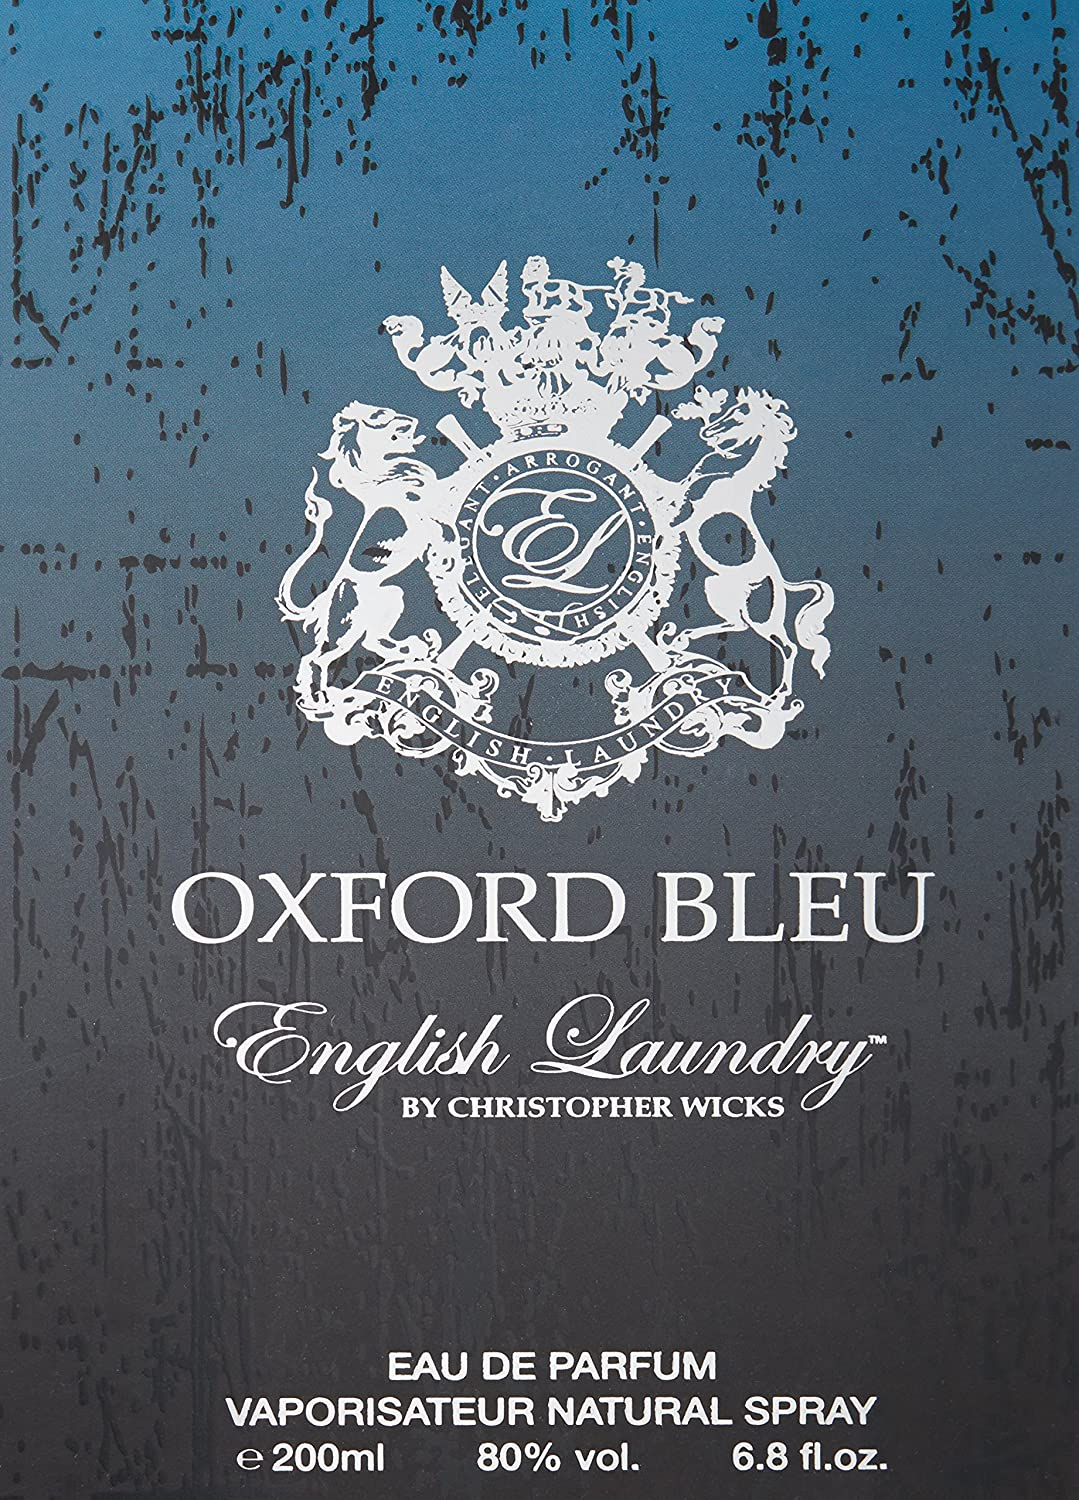 English Laundry Oxford Bleu Eau de Parfum, 6.8 fl.oz.